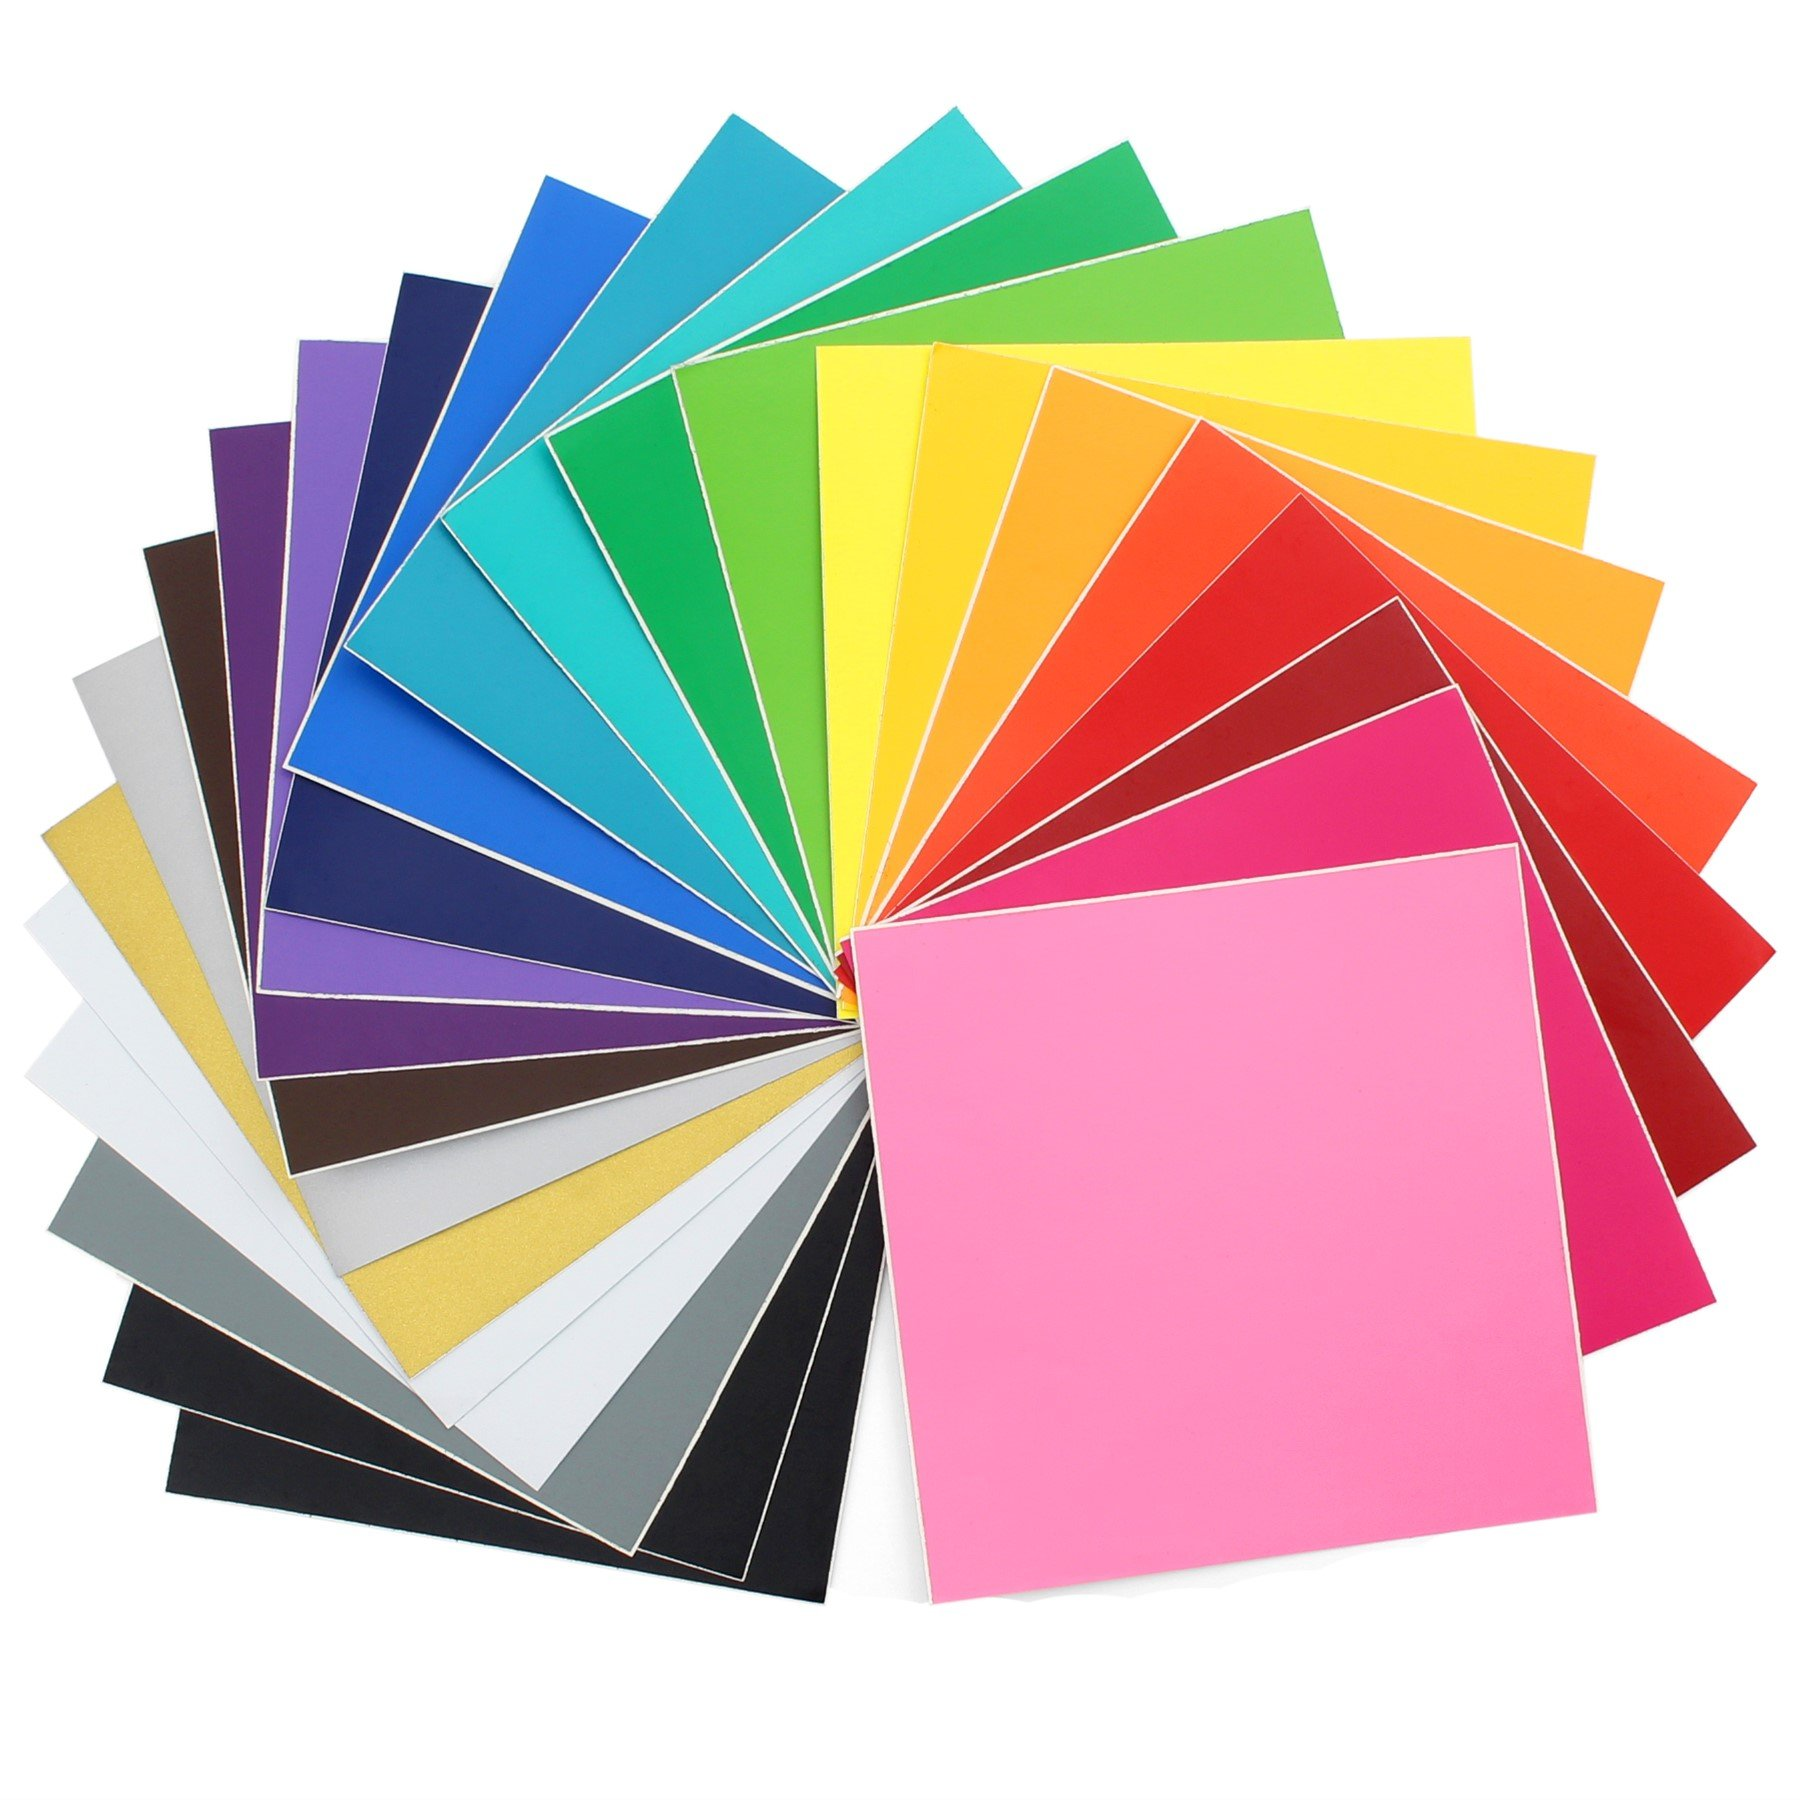 Oracal 631 Matte Vinyl - 24 Pack of Top Colors - 12'' x 12'' Sheets